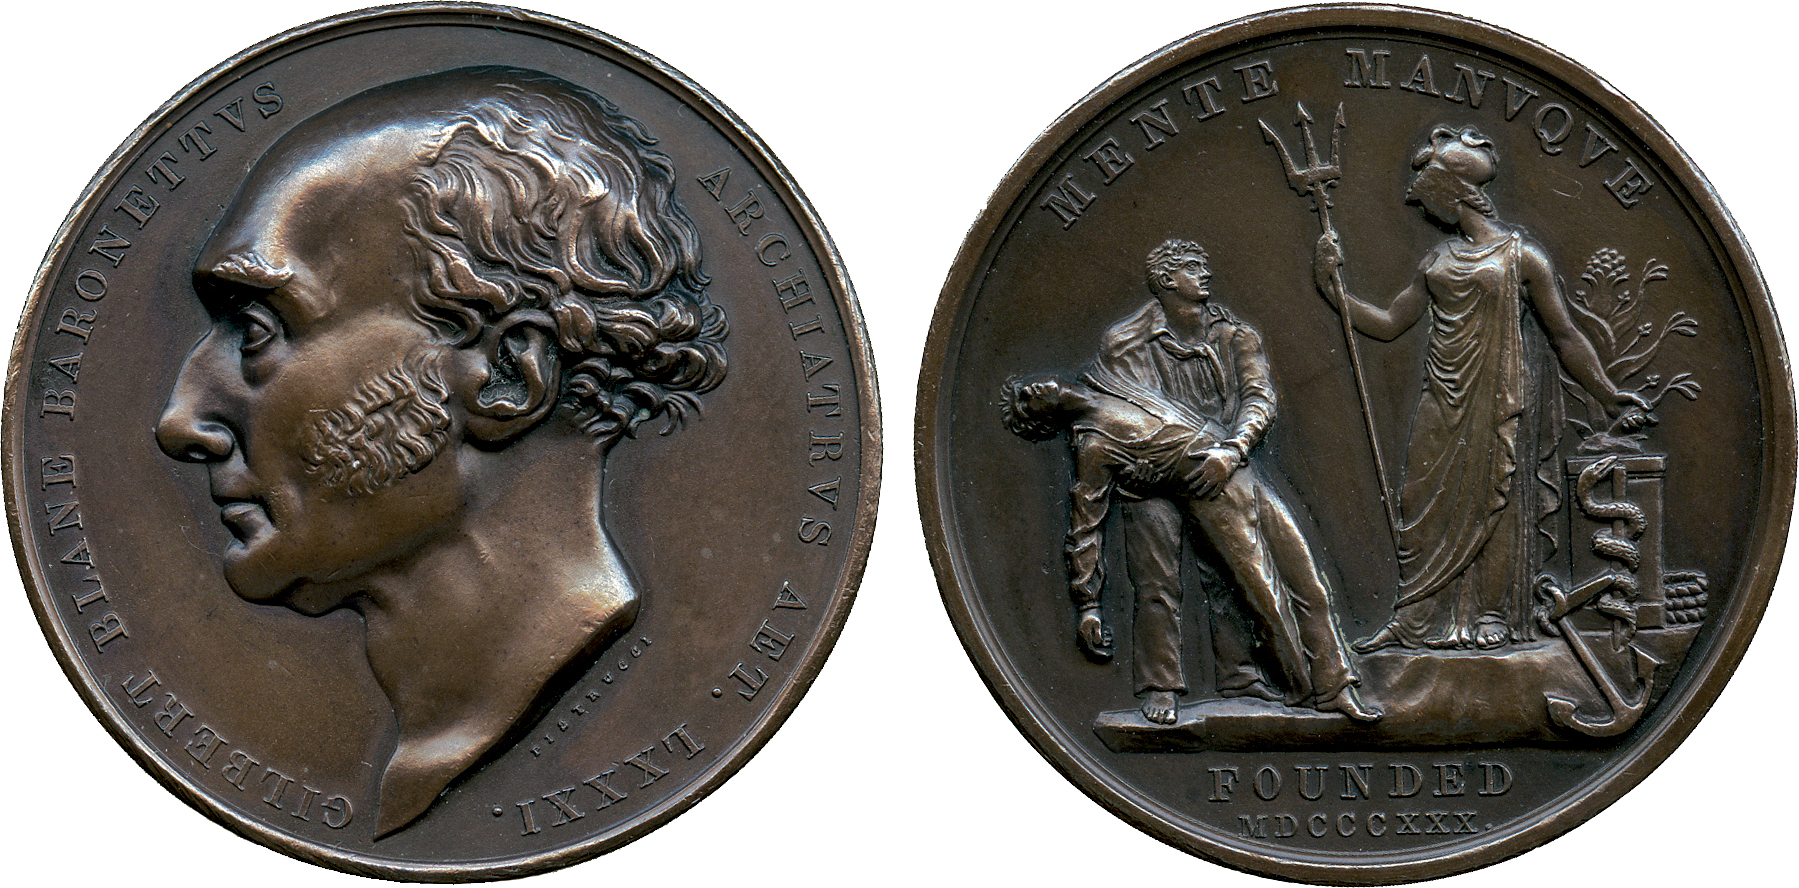 COMMEMORATIVE MEDALS, BRITISH MEDALS, Medals by Benetto Pistrucci (1783-1855), Sir Gilbert Blane (